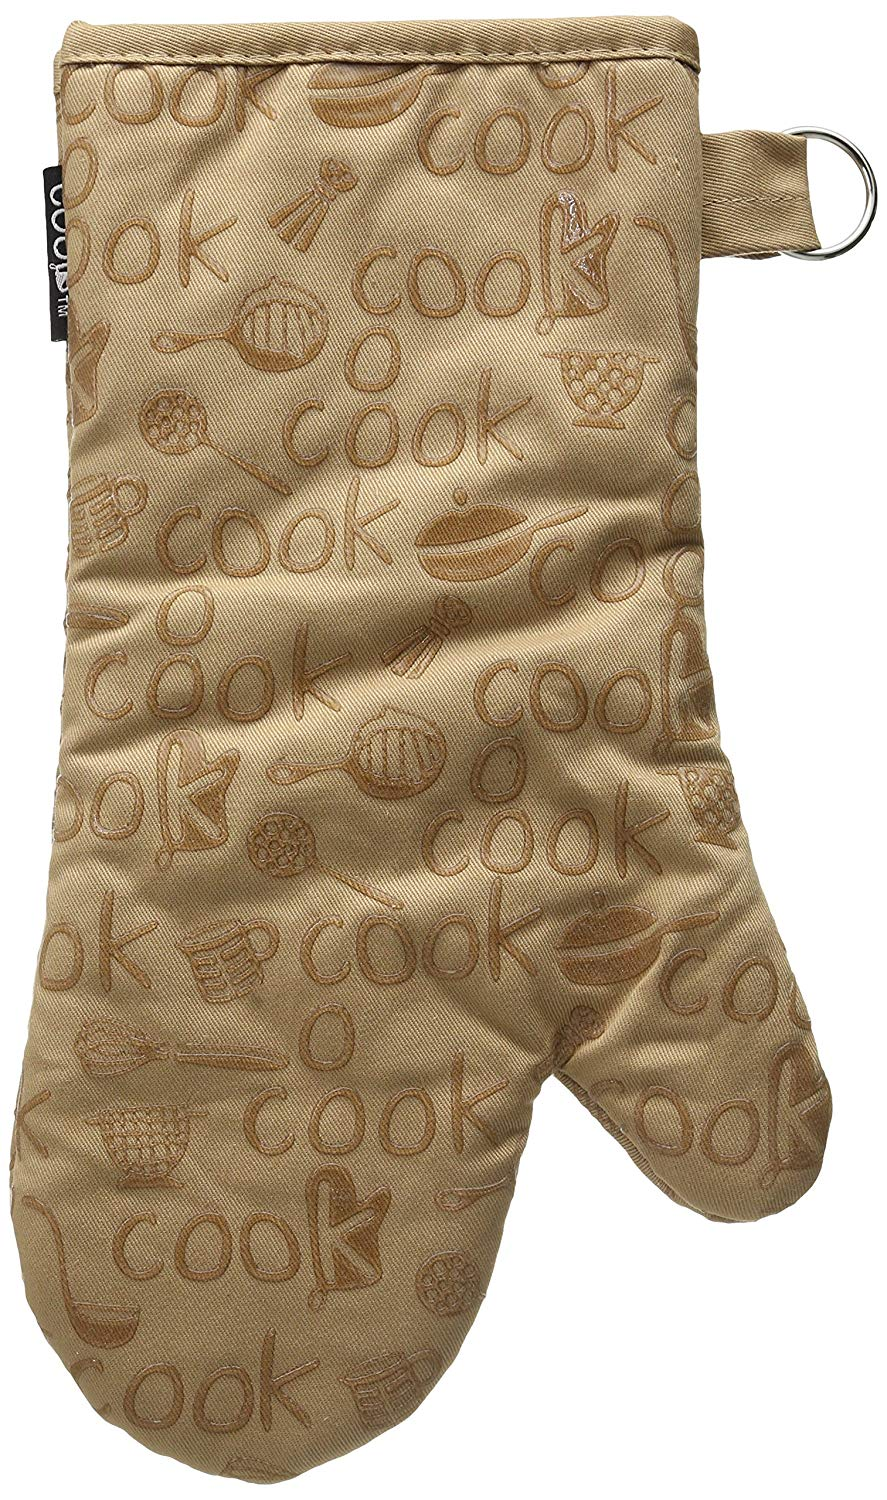 Kay Dee Designs Cook Collection Silicone Oven Mitt, Taupe